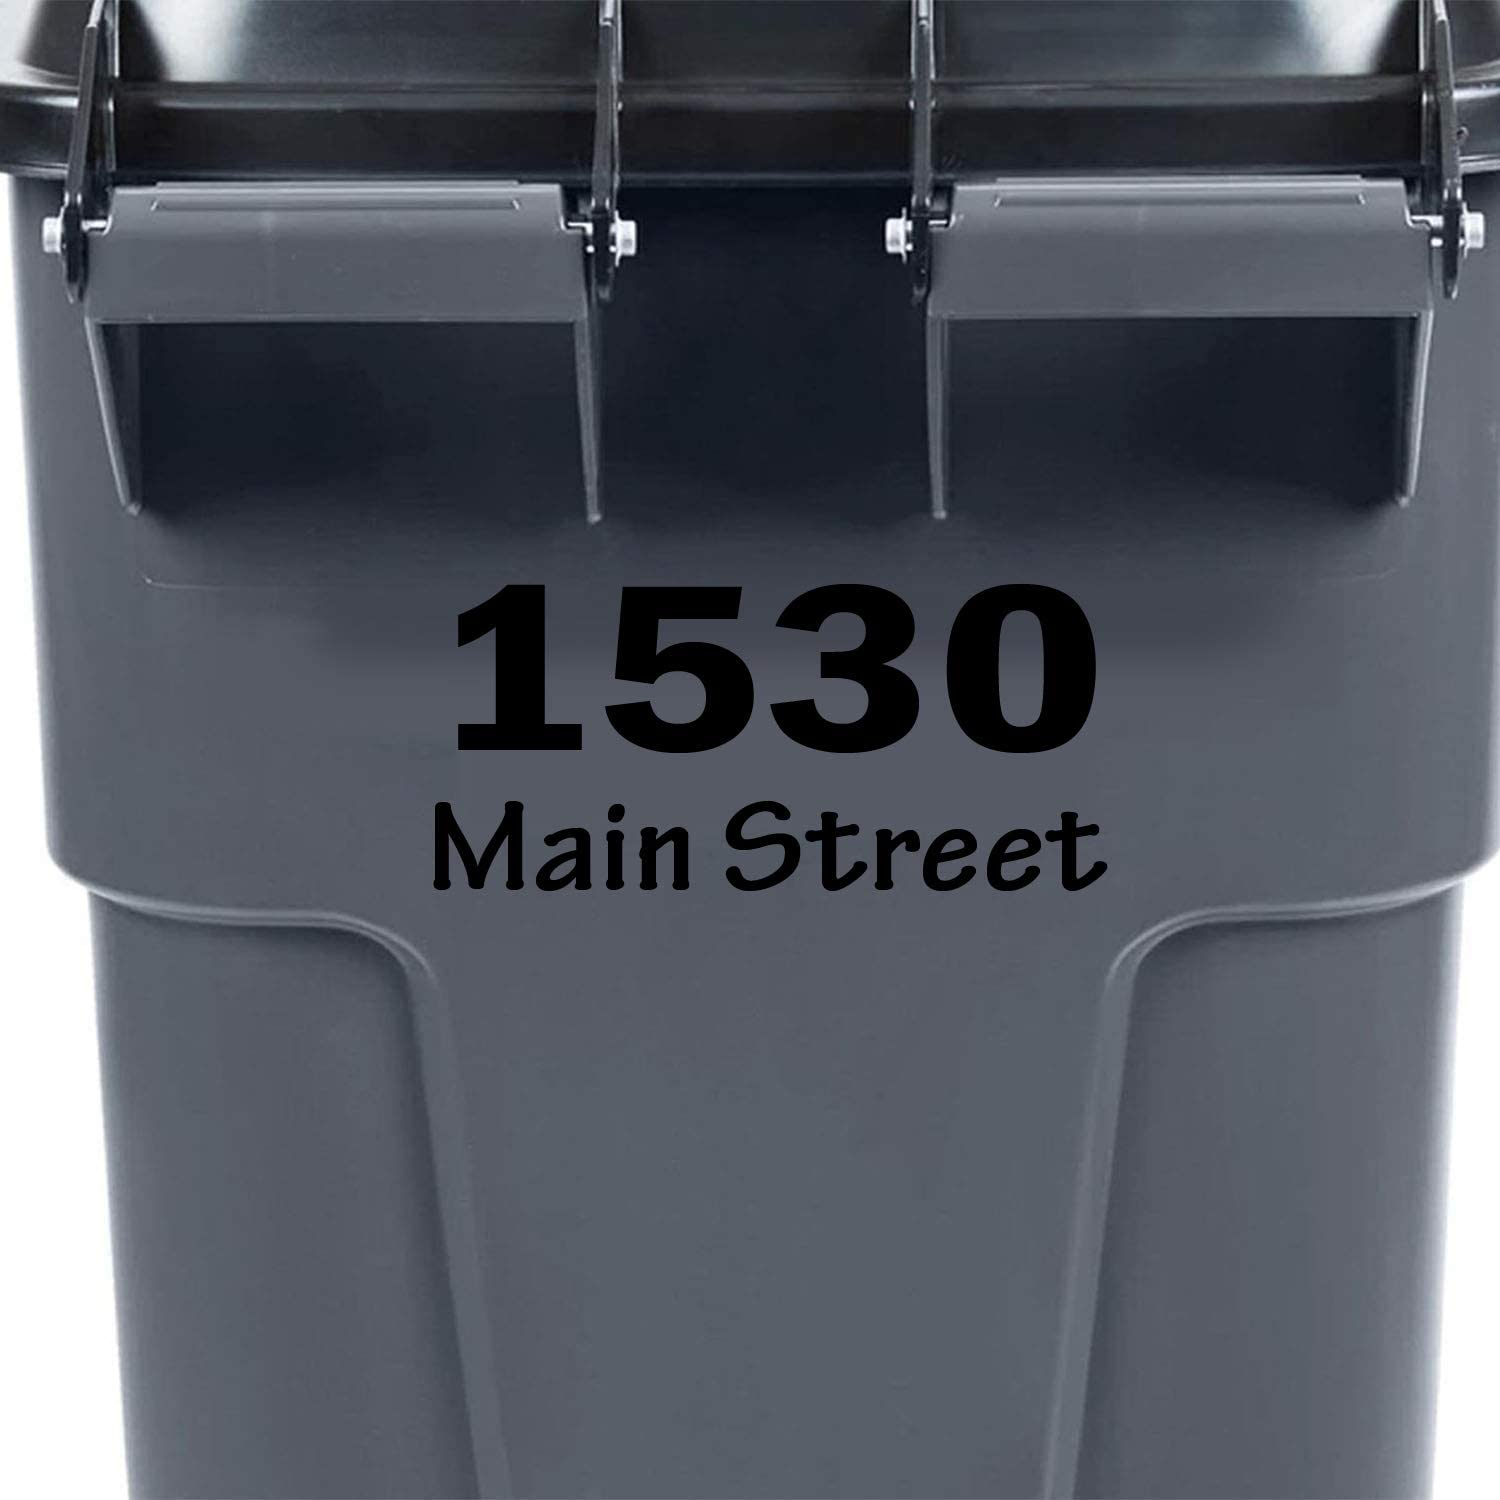 VWAQ Personalized Trash Can Decal Custom Garbage Bin Decor Address Vinyl Sticker - TC14